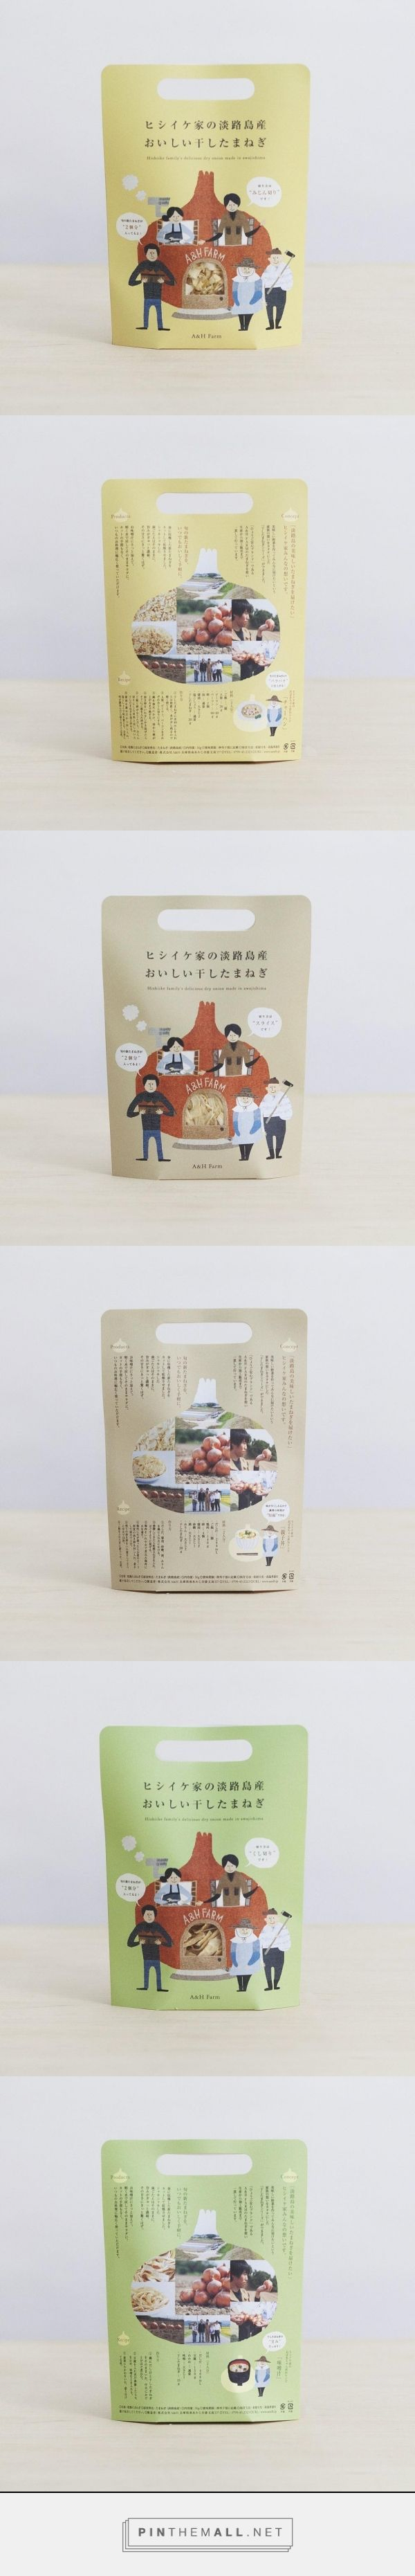 A&H Farm|淡路島でおいしい野菜をつくる家族。Who has a link for this packaging PD